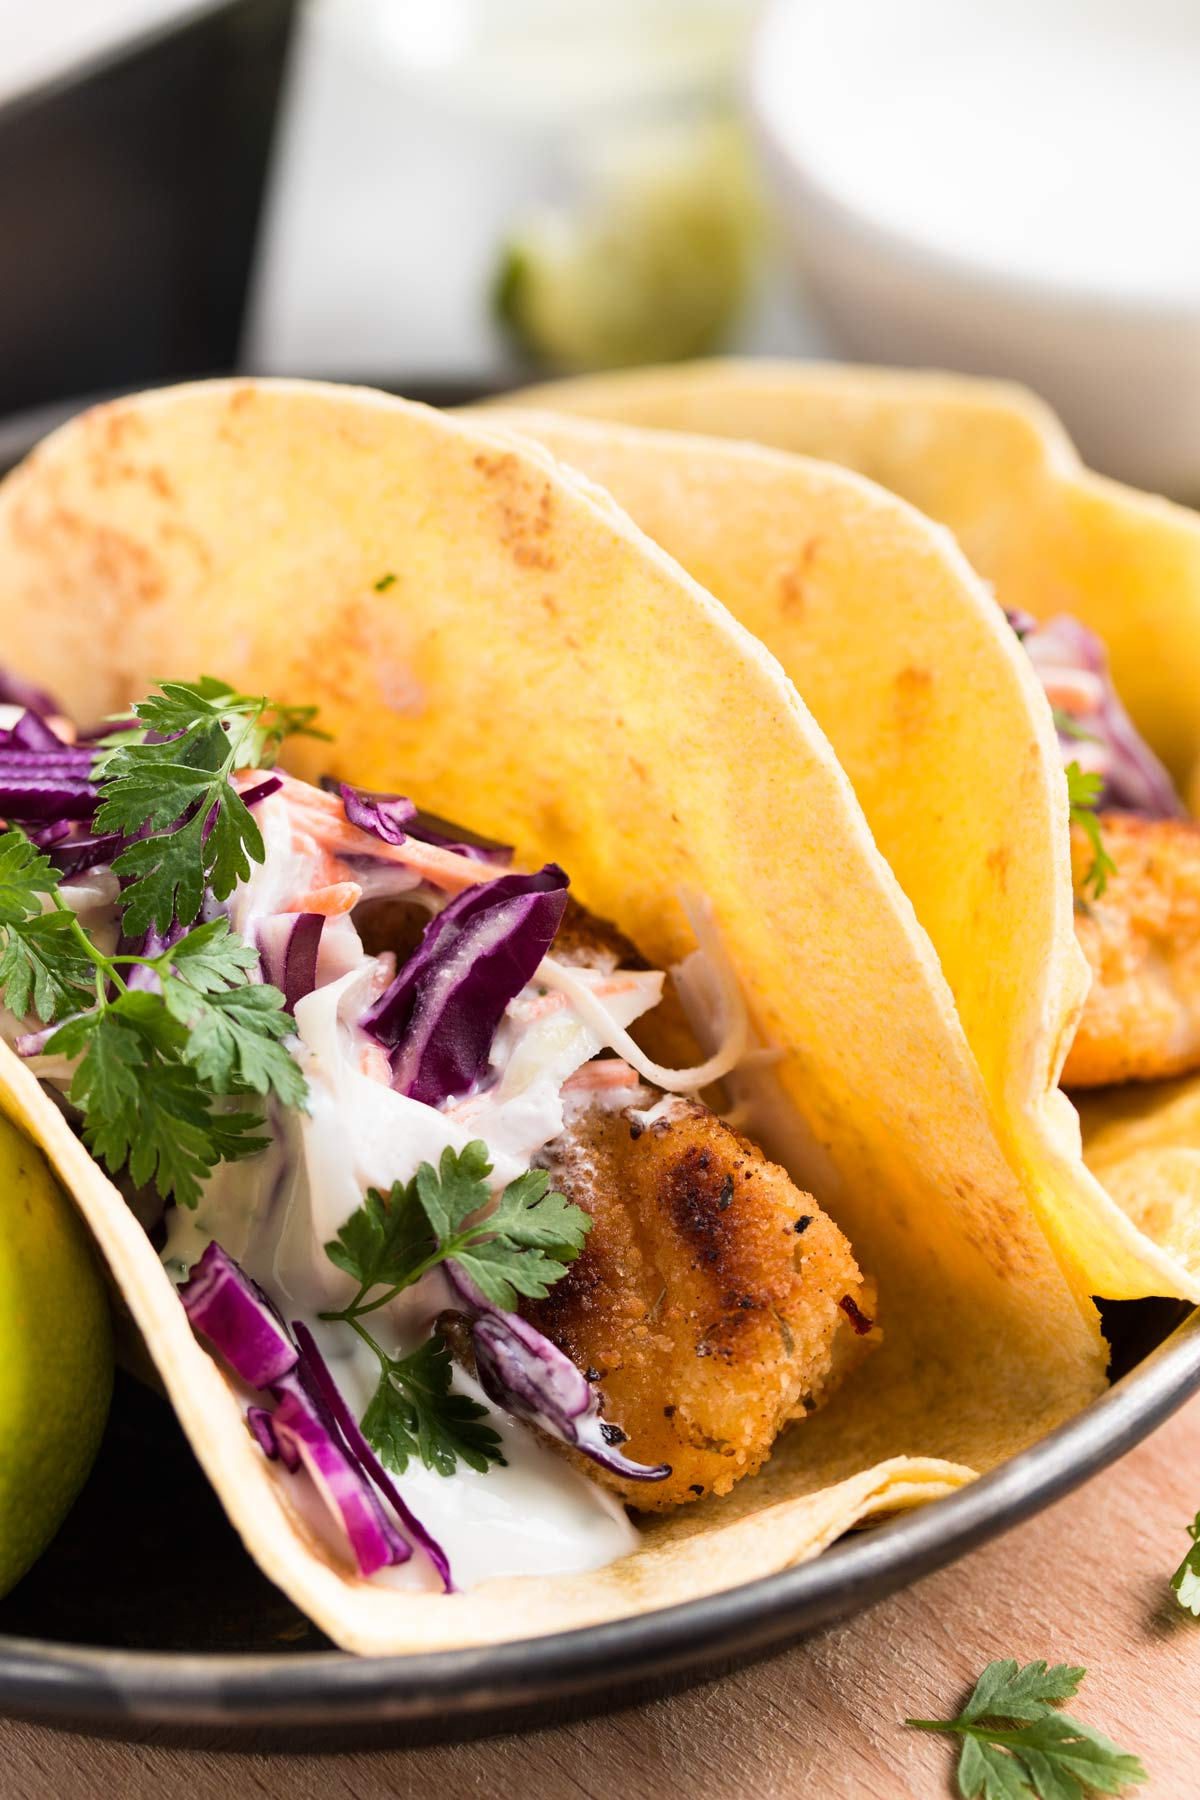 baja-fish-tacos-with-creamy-cilantro-lime-slaw-recipe-3